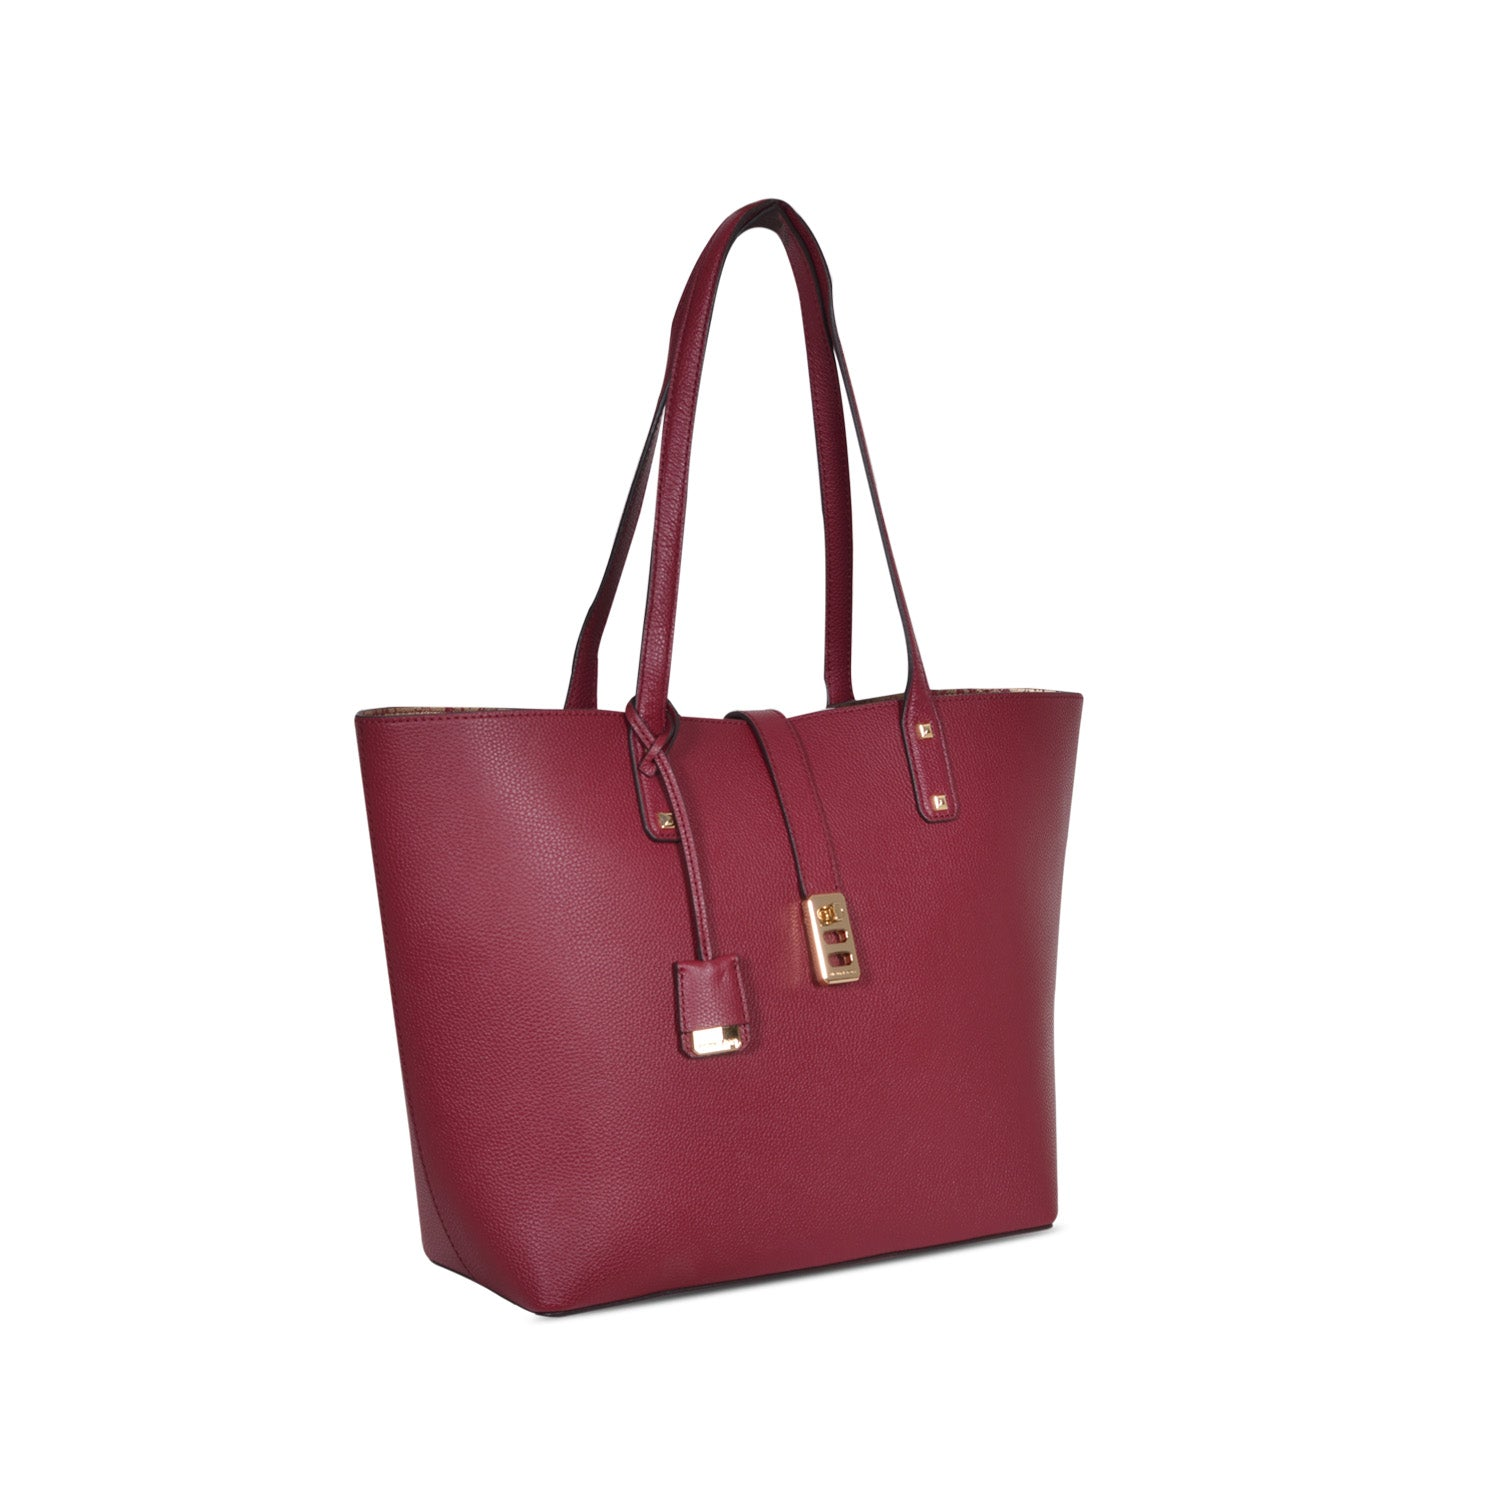 c522cfbd69d ... MICHAEL KORS KARSON LARGE MULBERRY LEATHER CARRY-ALL TOTE BAG ...